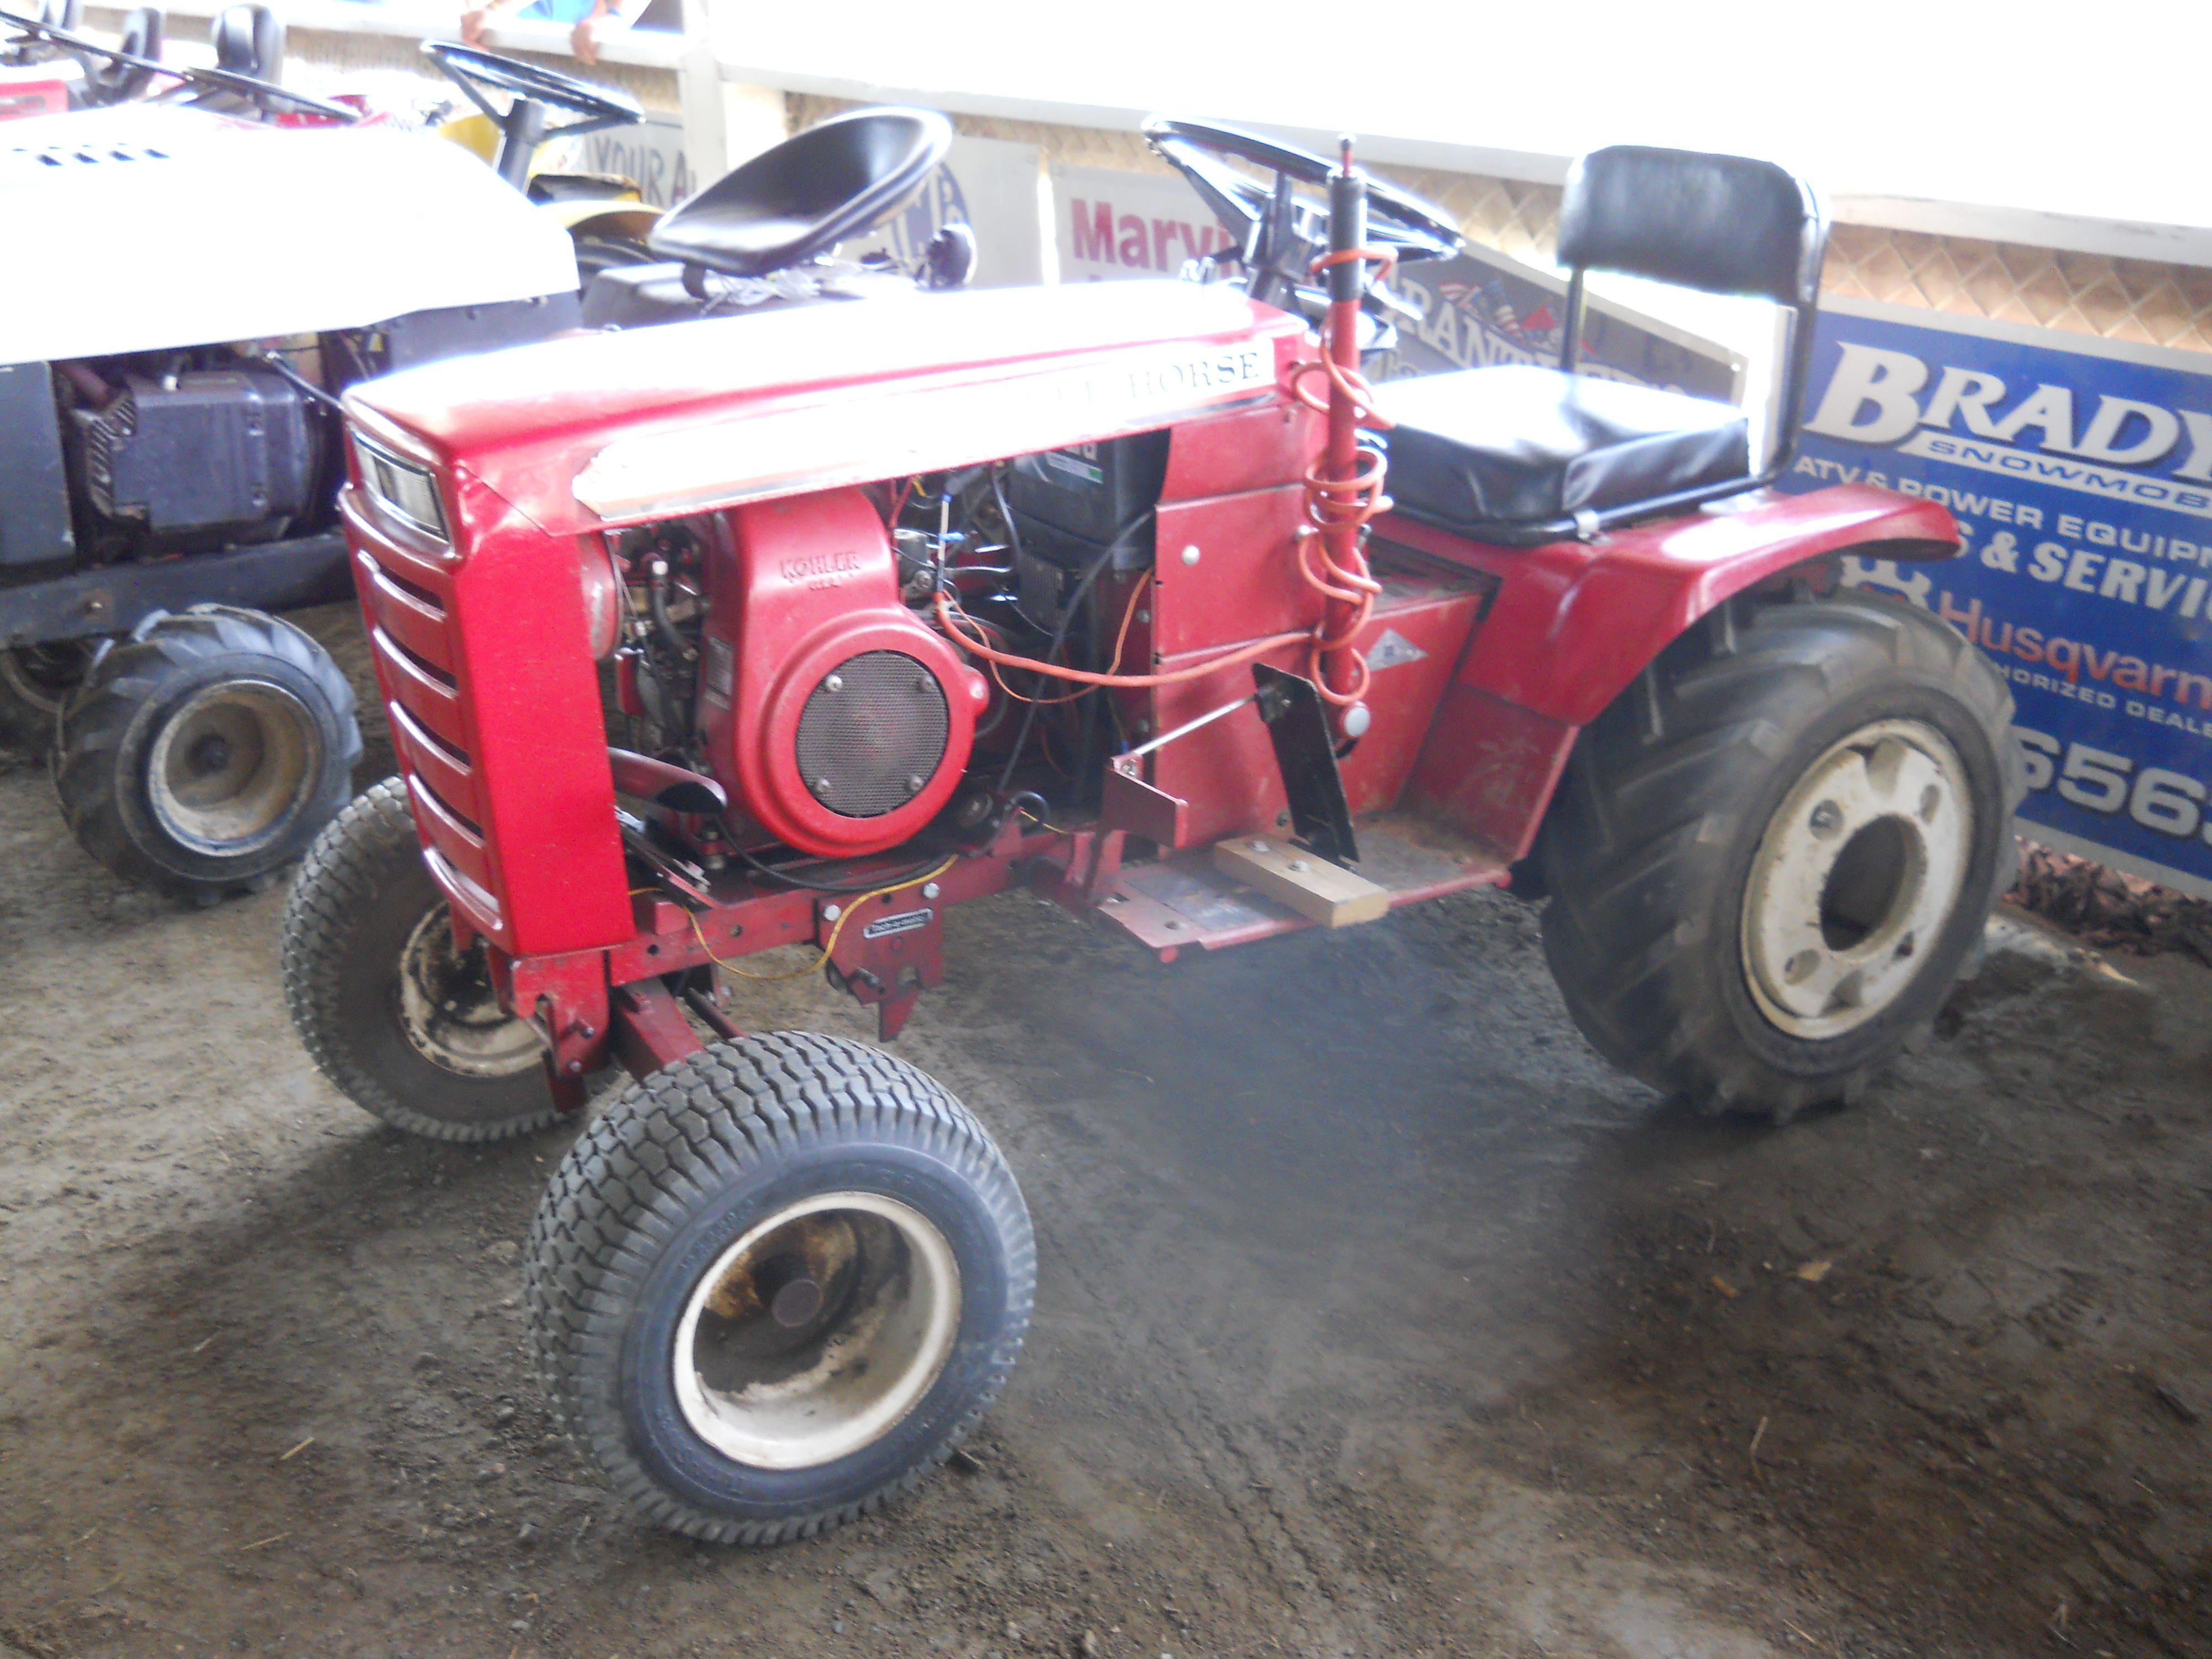 This Wheel Horse Tractor Was Share By A Little Girl And Two Boys In The Competition Pull